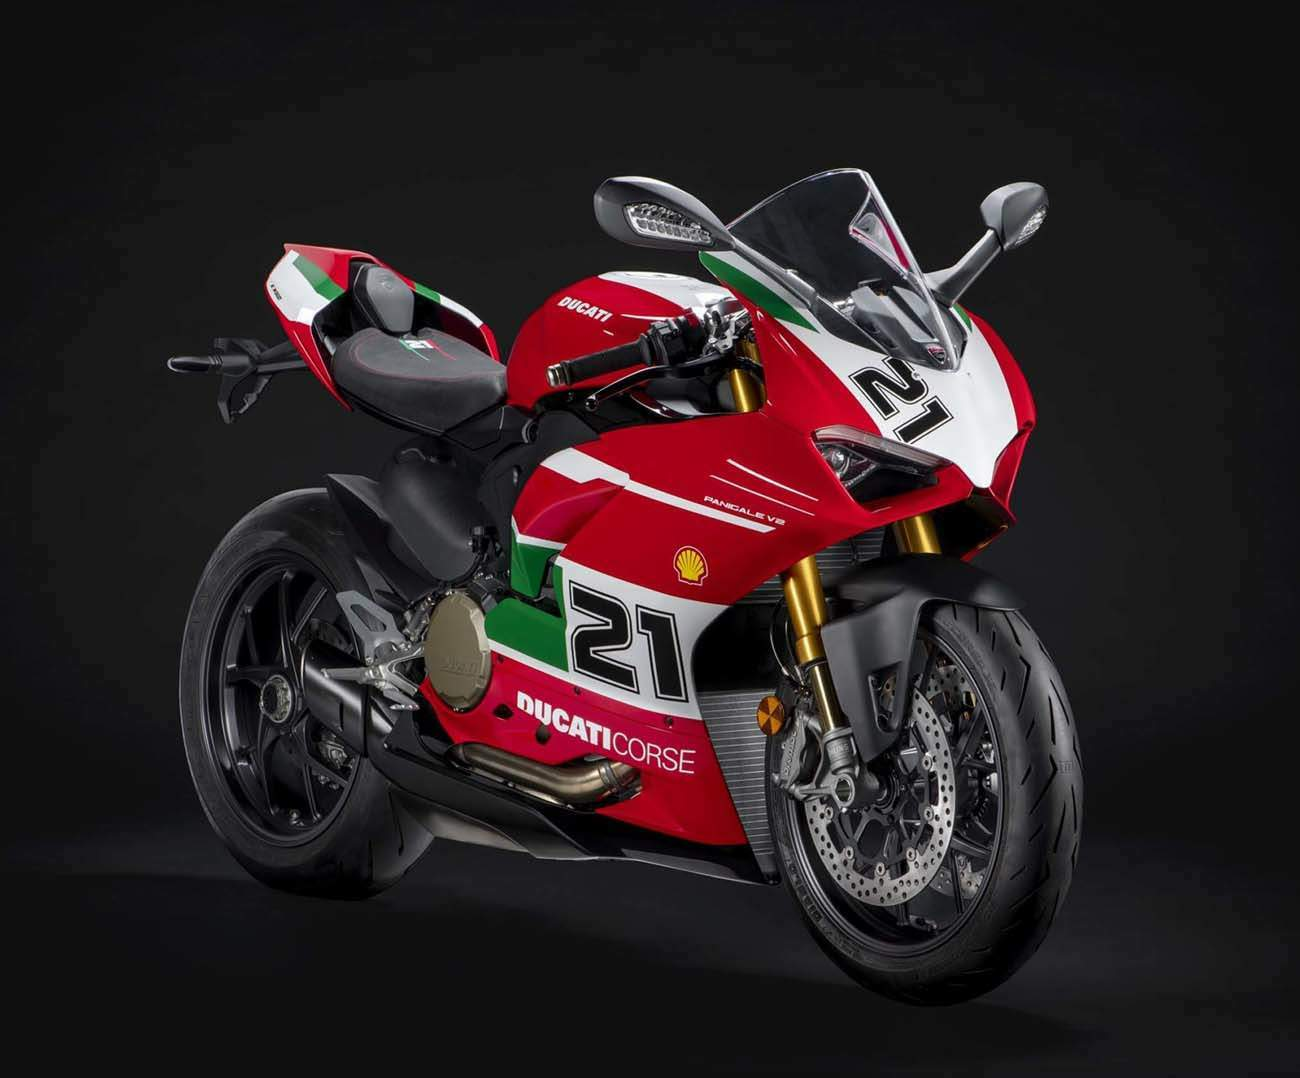 Ducati Panigale V2 Bayliss 1st Champion 20th Anniversary technical specifications